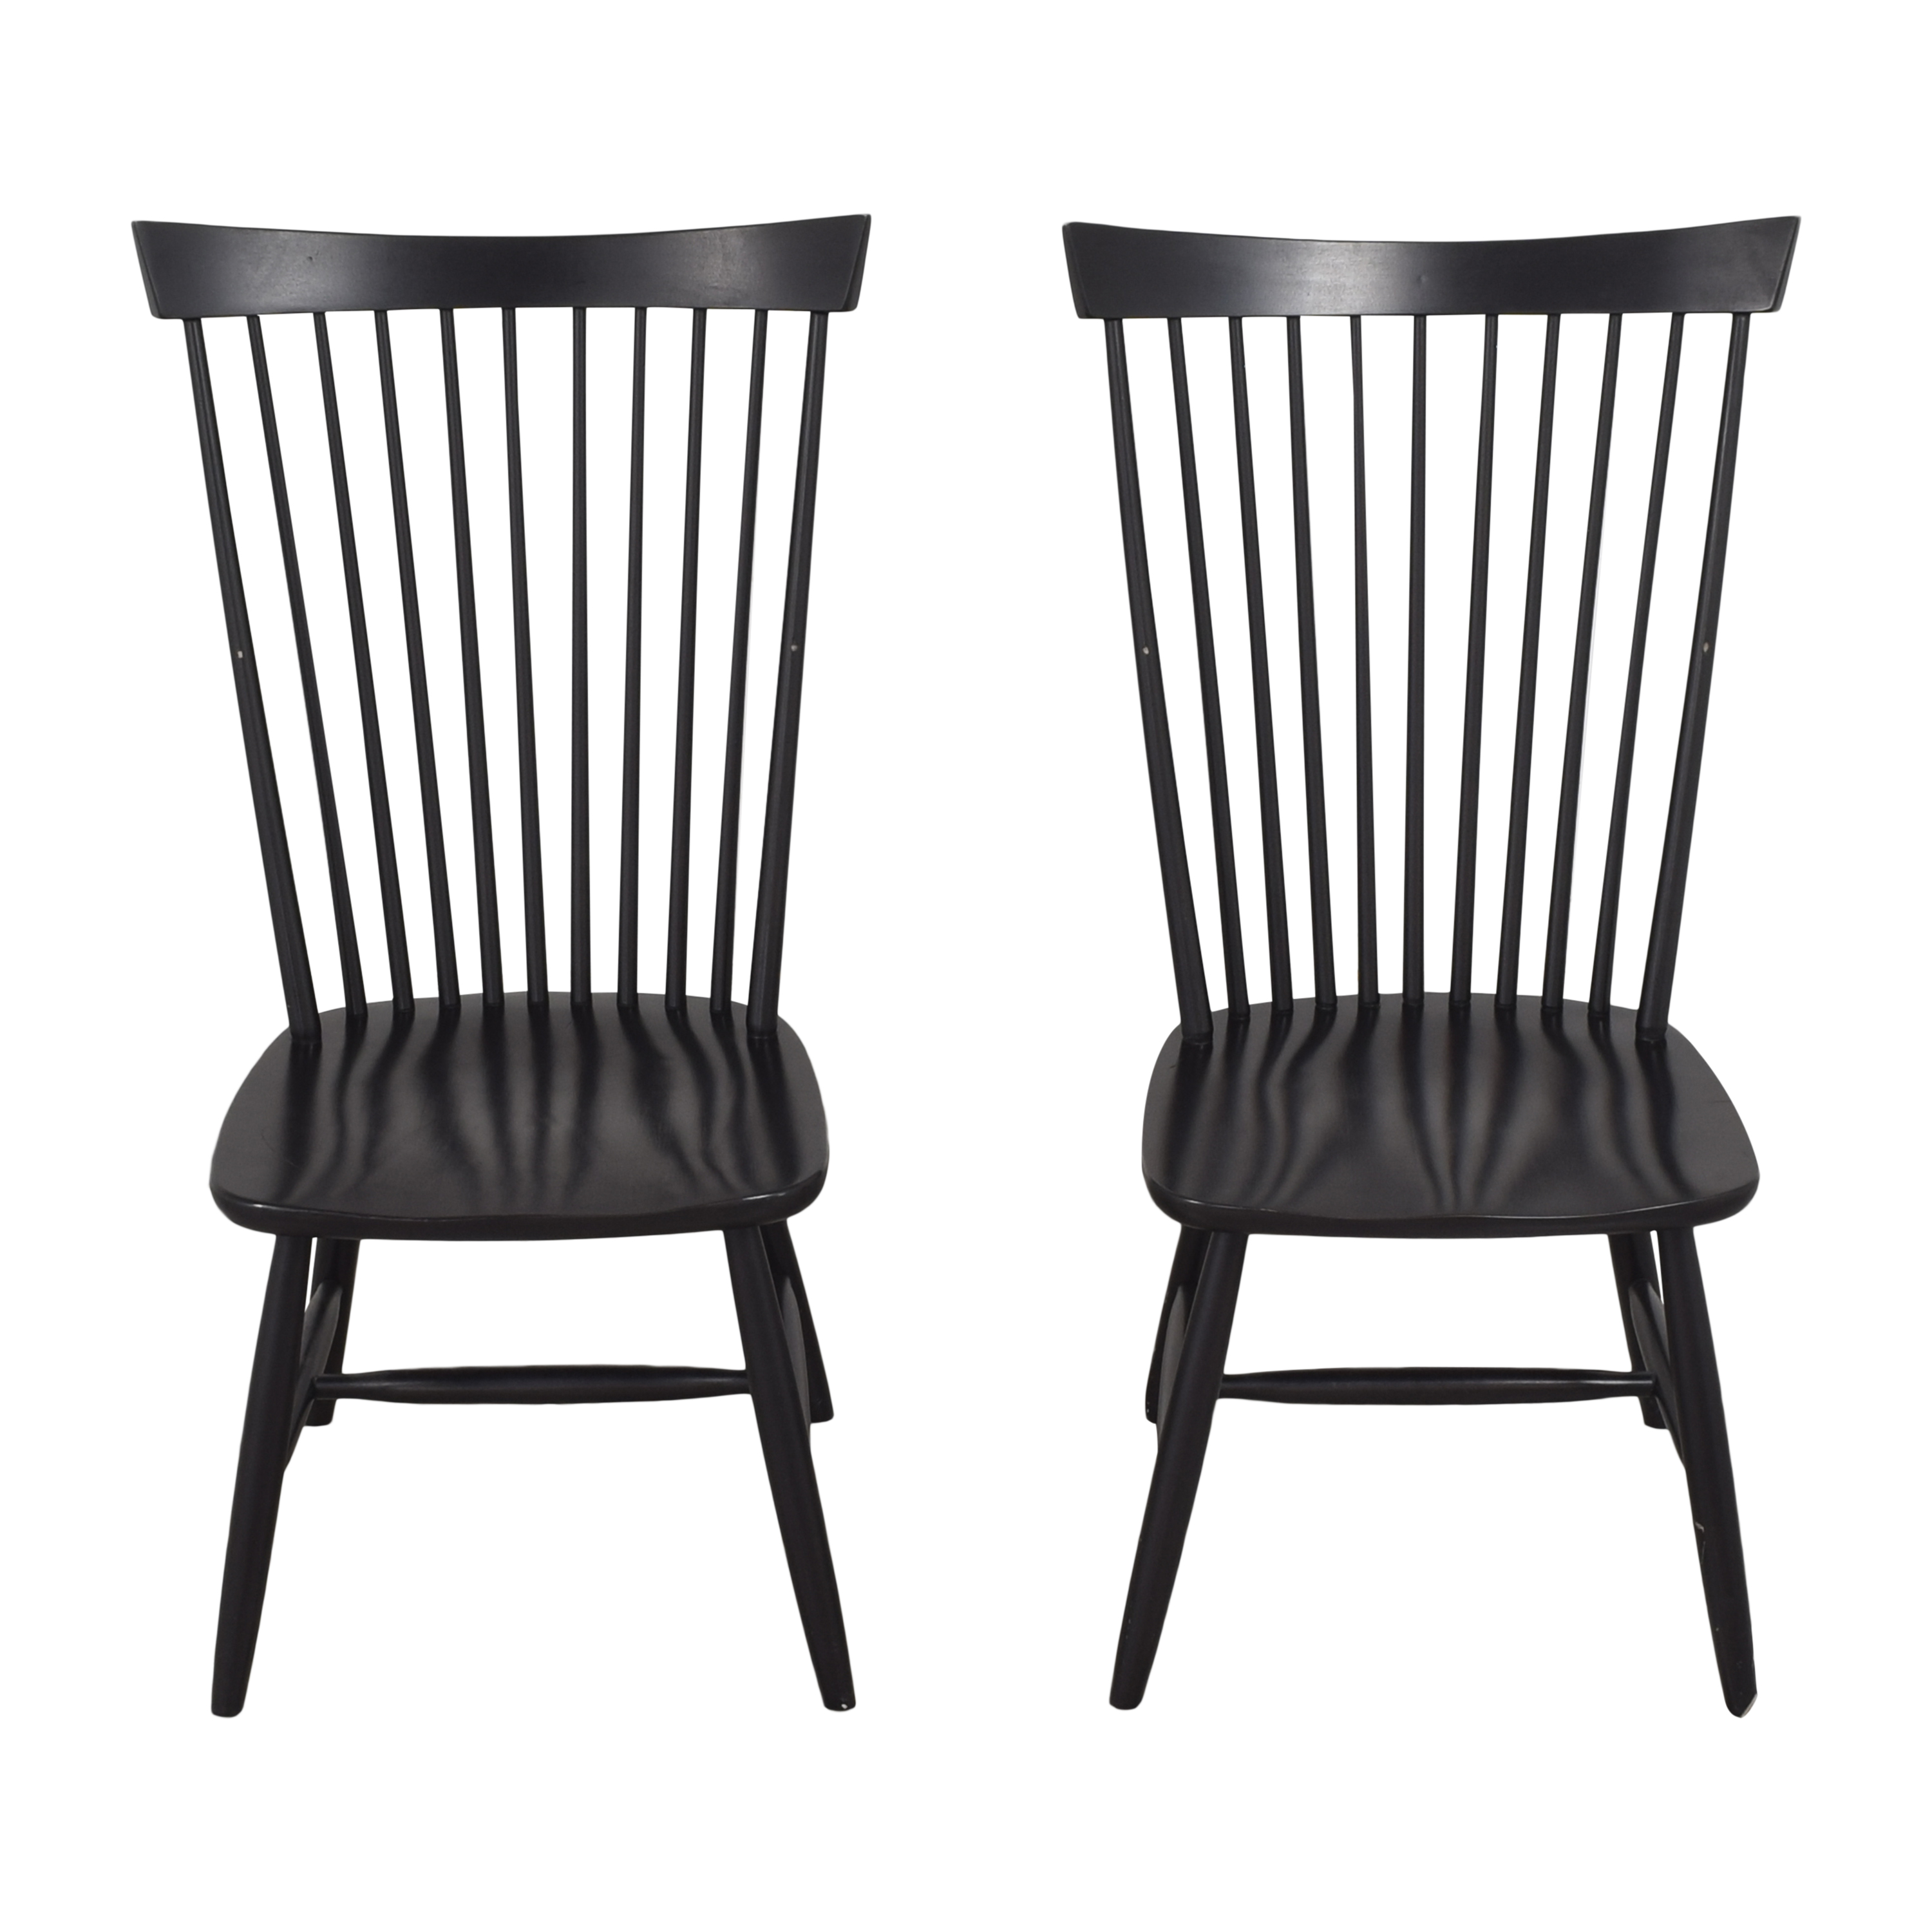 Crate & Barrel Crate & Barrel Marlow II Dining Chairs dimensions